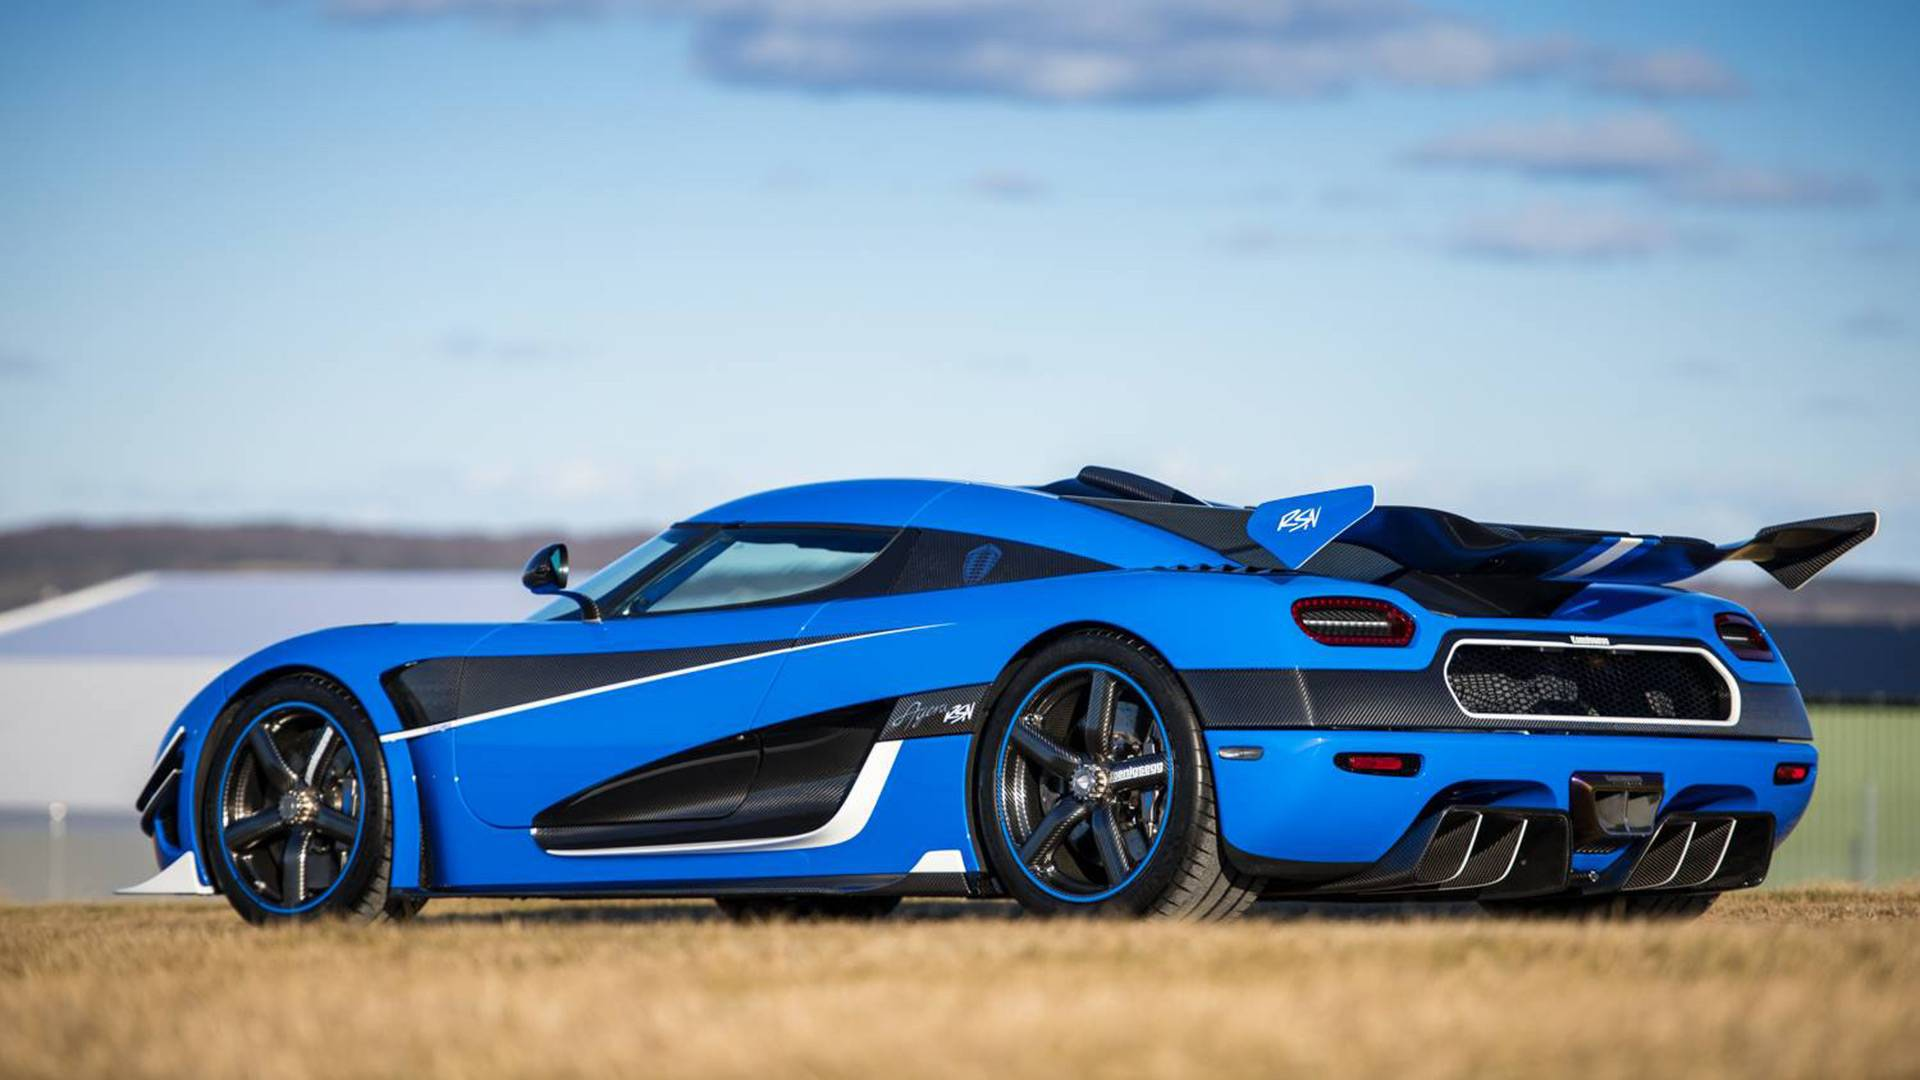 Koenigsegg Agera Rs Reaches 242 Mph In Less Than 13 Miles